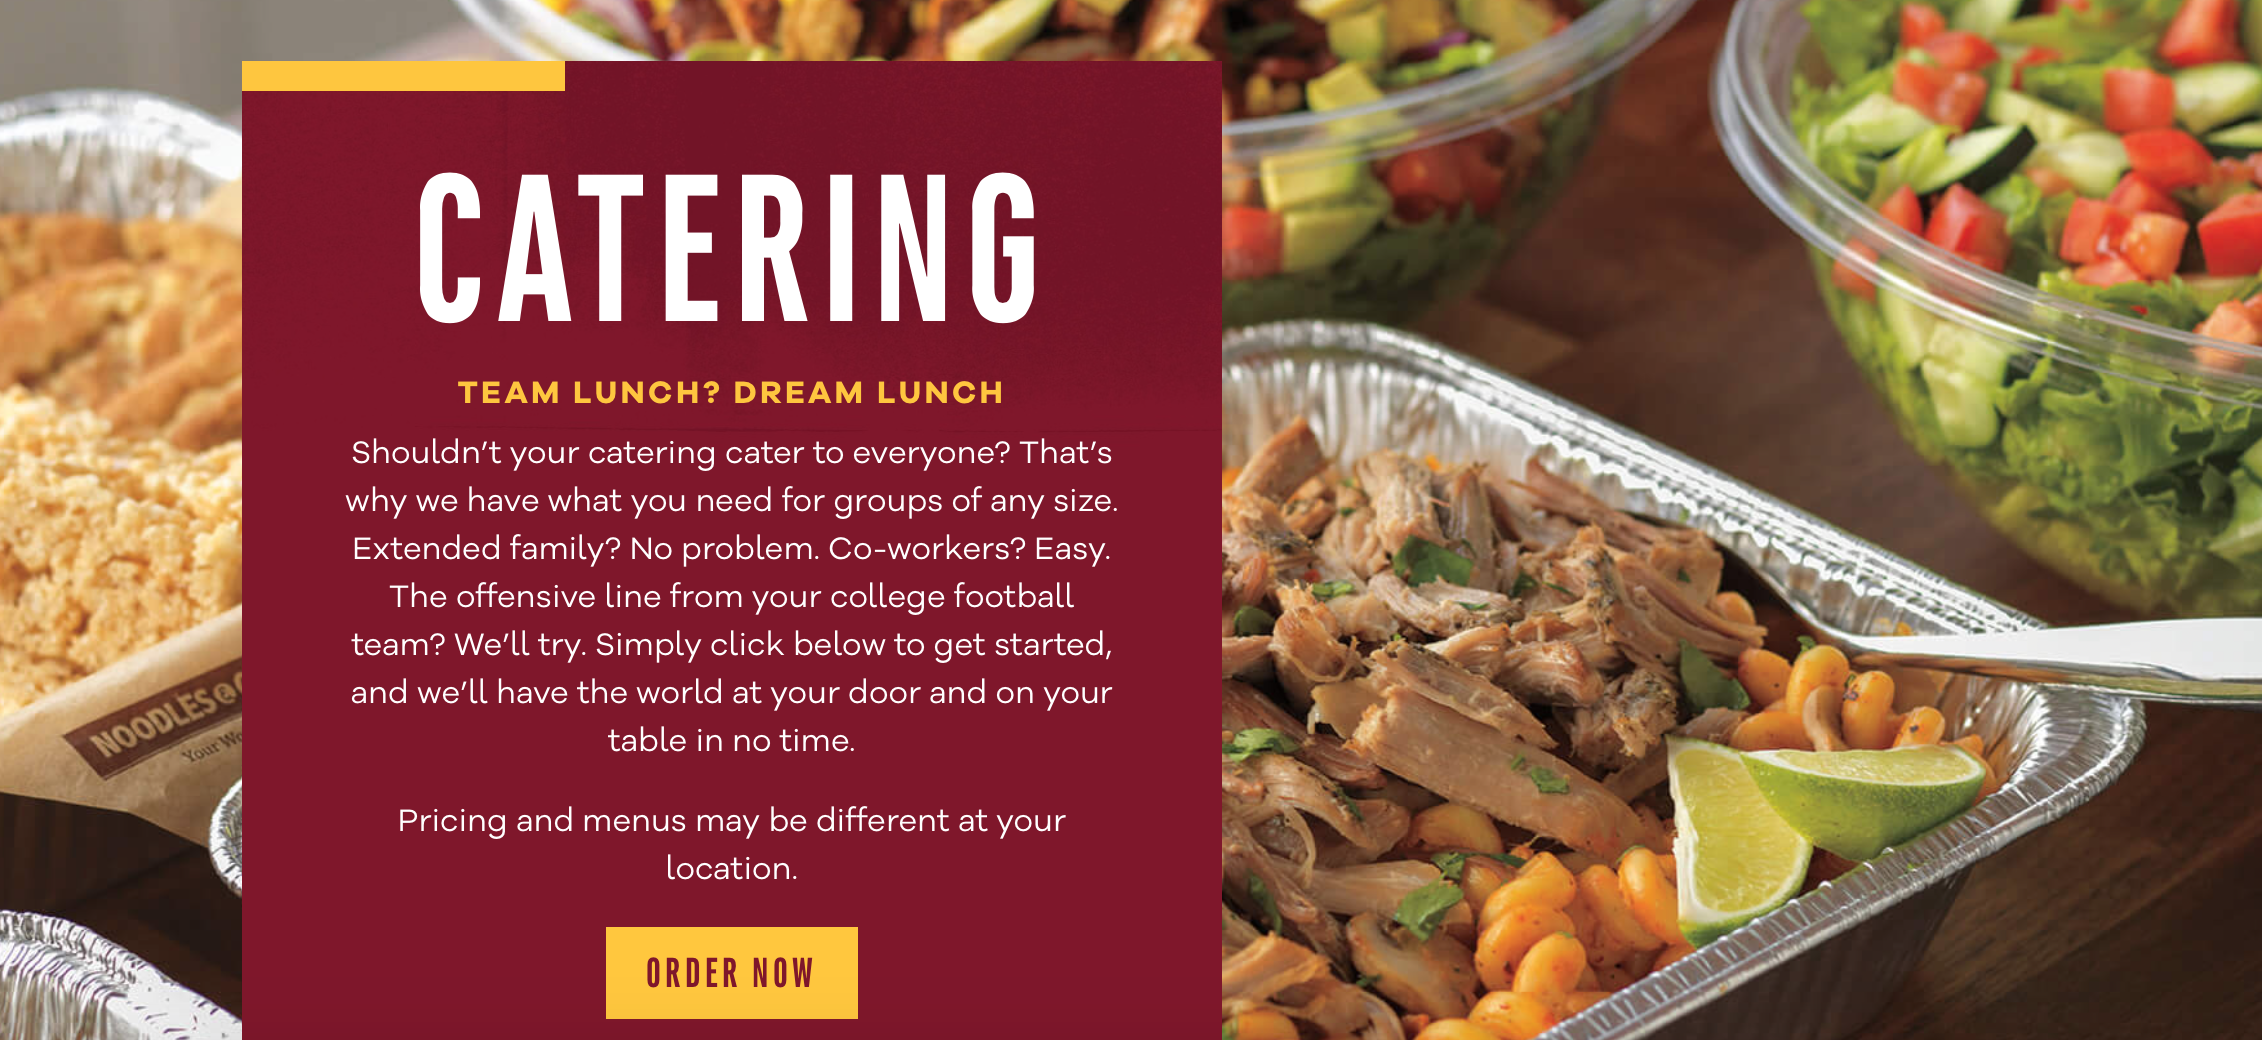 Catered gluten free Thanksgiving sides from Noodles & Co.